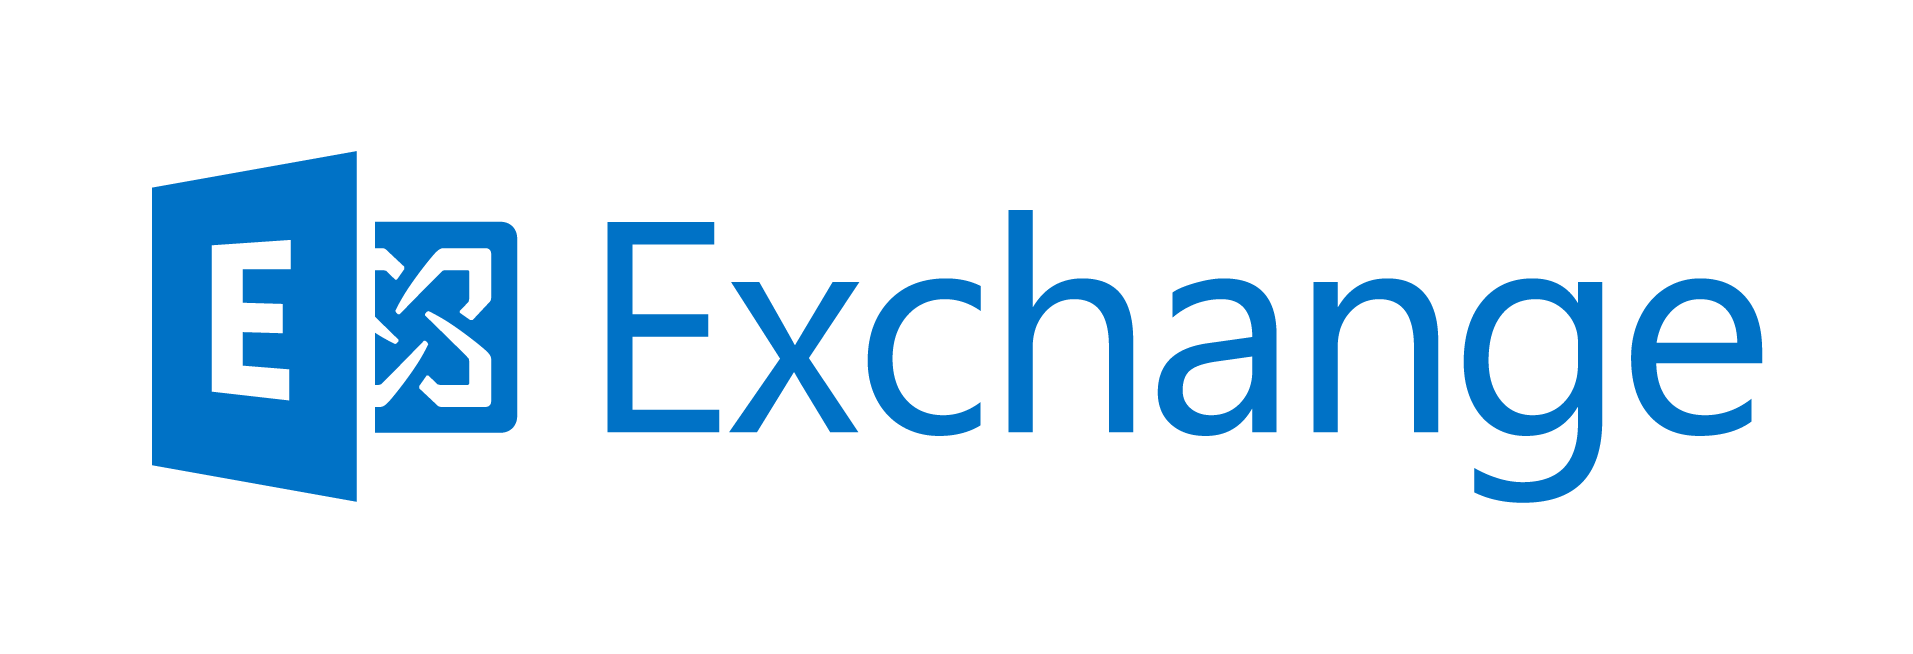 How to configure Exchange 2016 Internal and External Url's